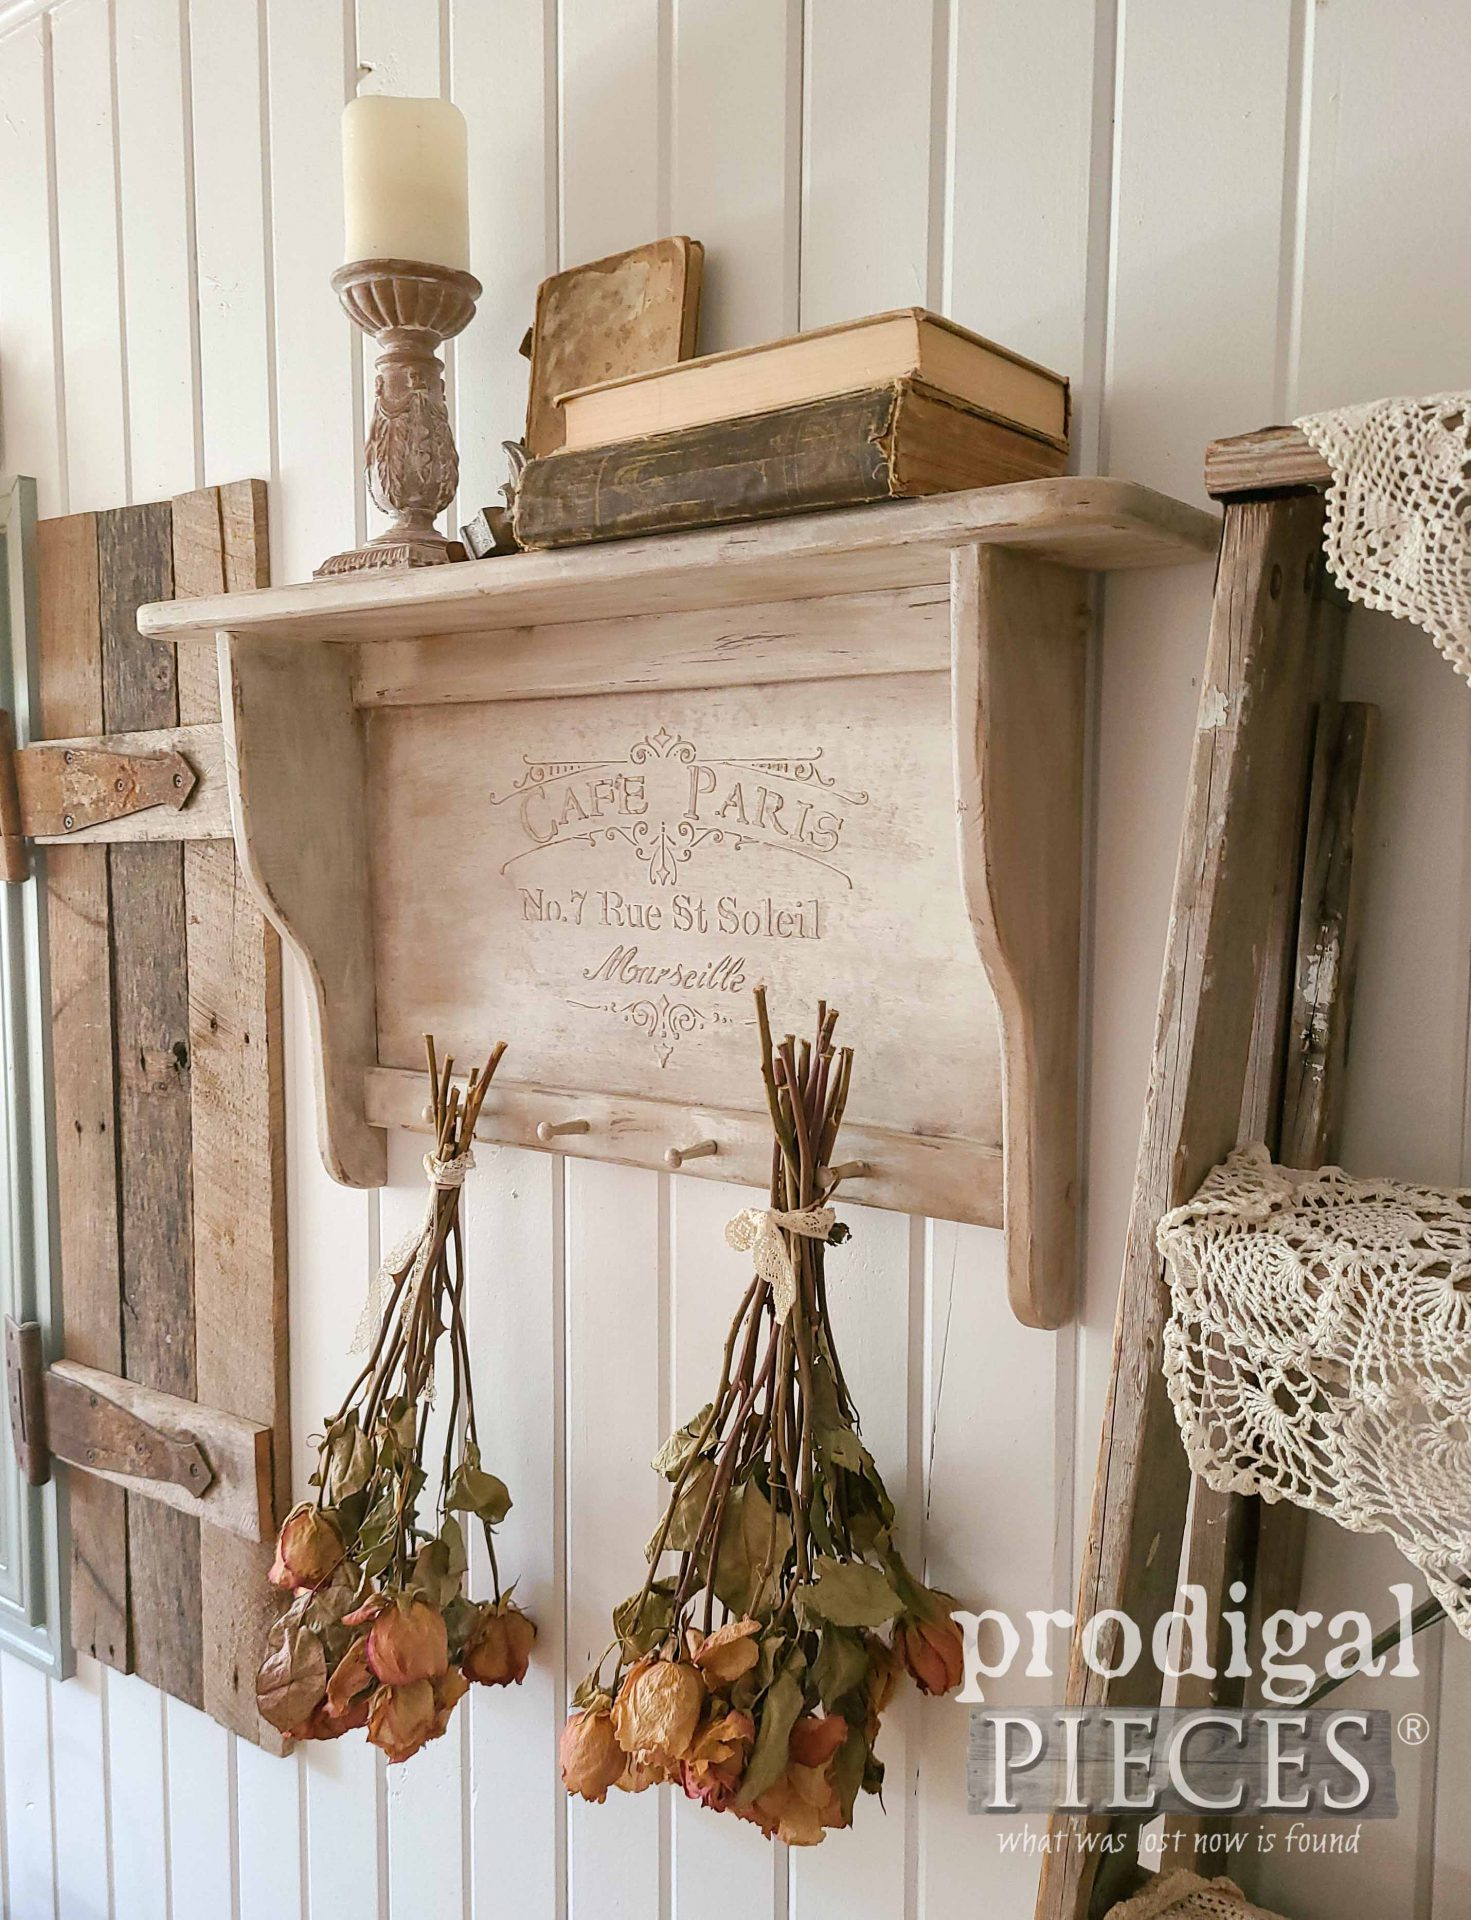 Distressed Farmhouse Chic with Video Tutorial by Larissa of Prodigal Pieces | prodigalpieces.com #prodigalpieces #diy #home #farmhouse #homedecor #embossing